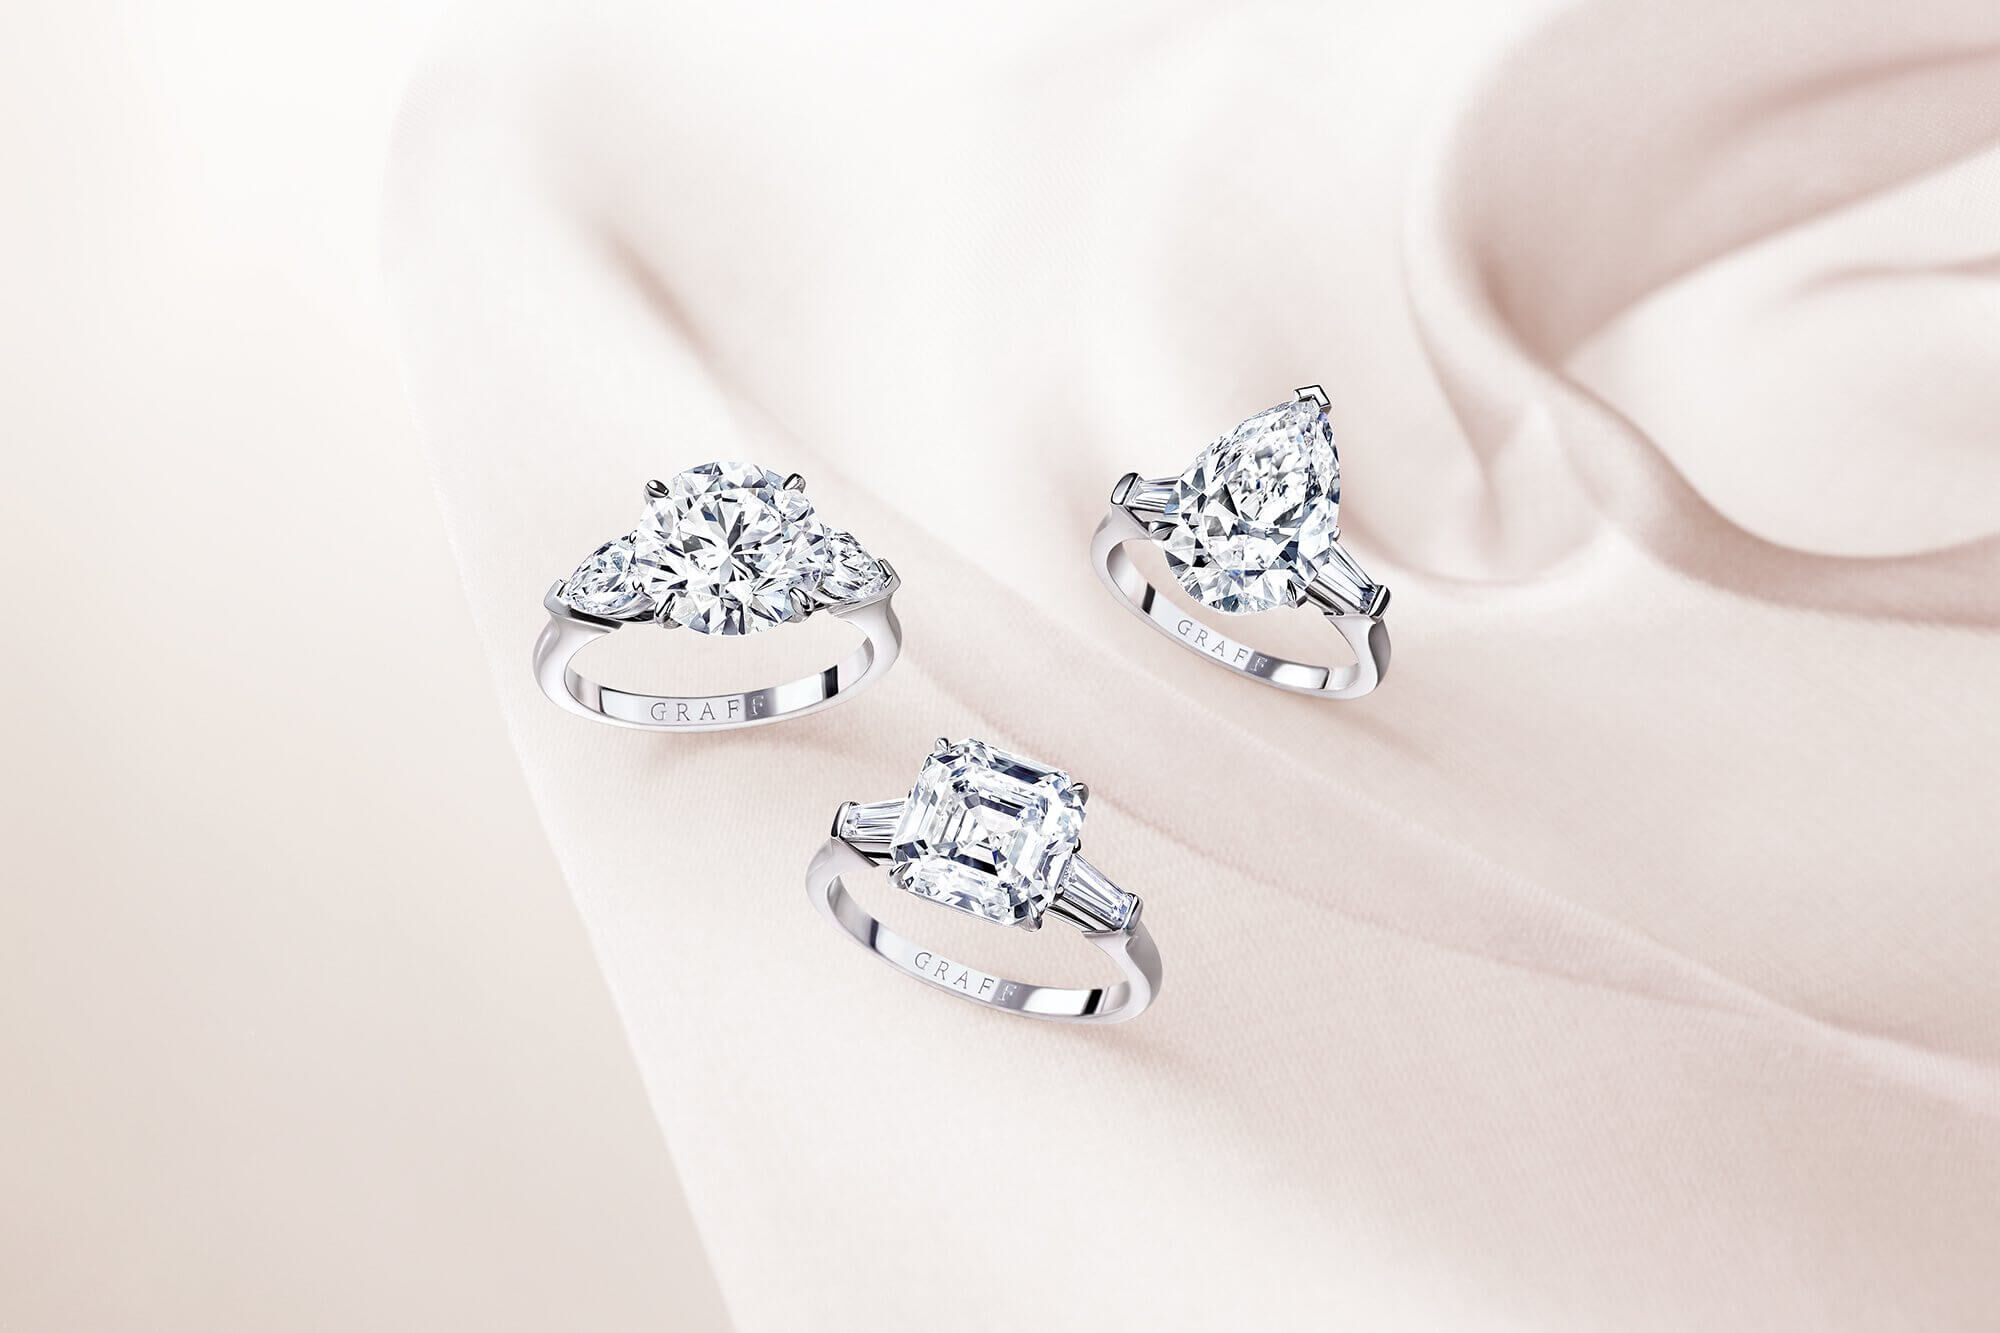 Three Graff promise engagement rings set with round diamond, pear Shape Diamond and Square Emerald Cut Diamond